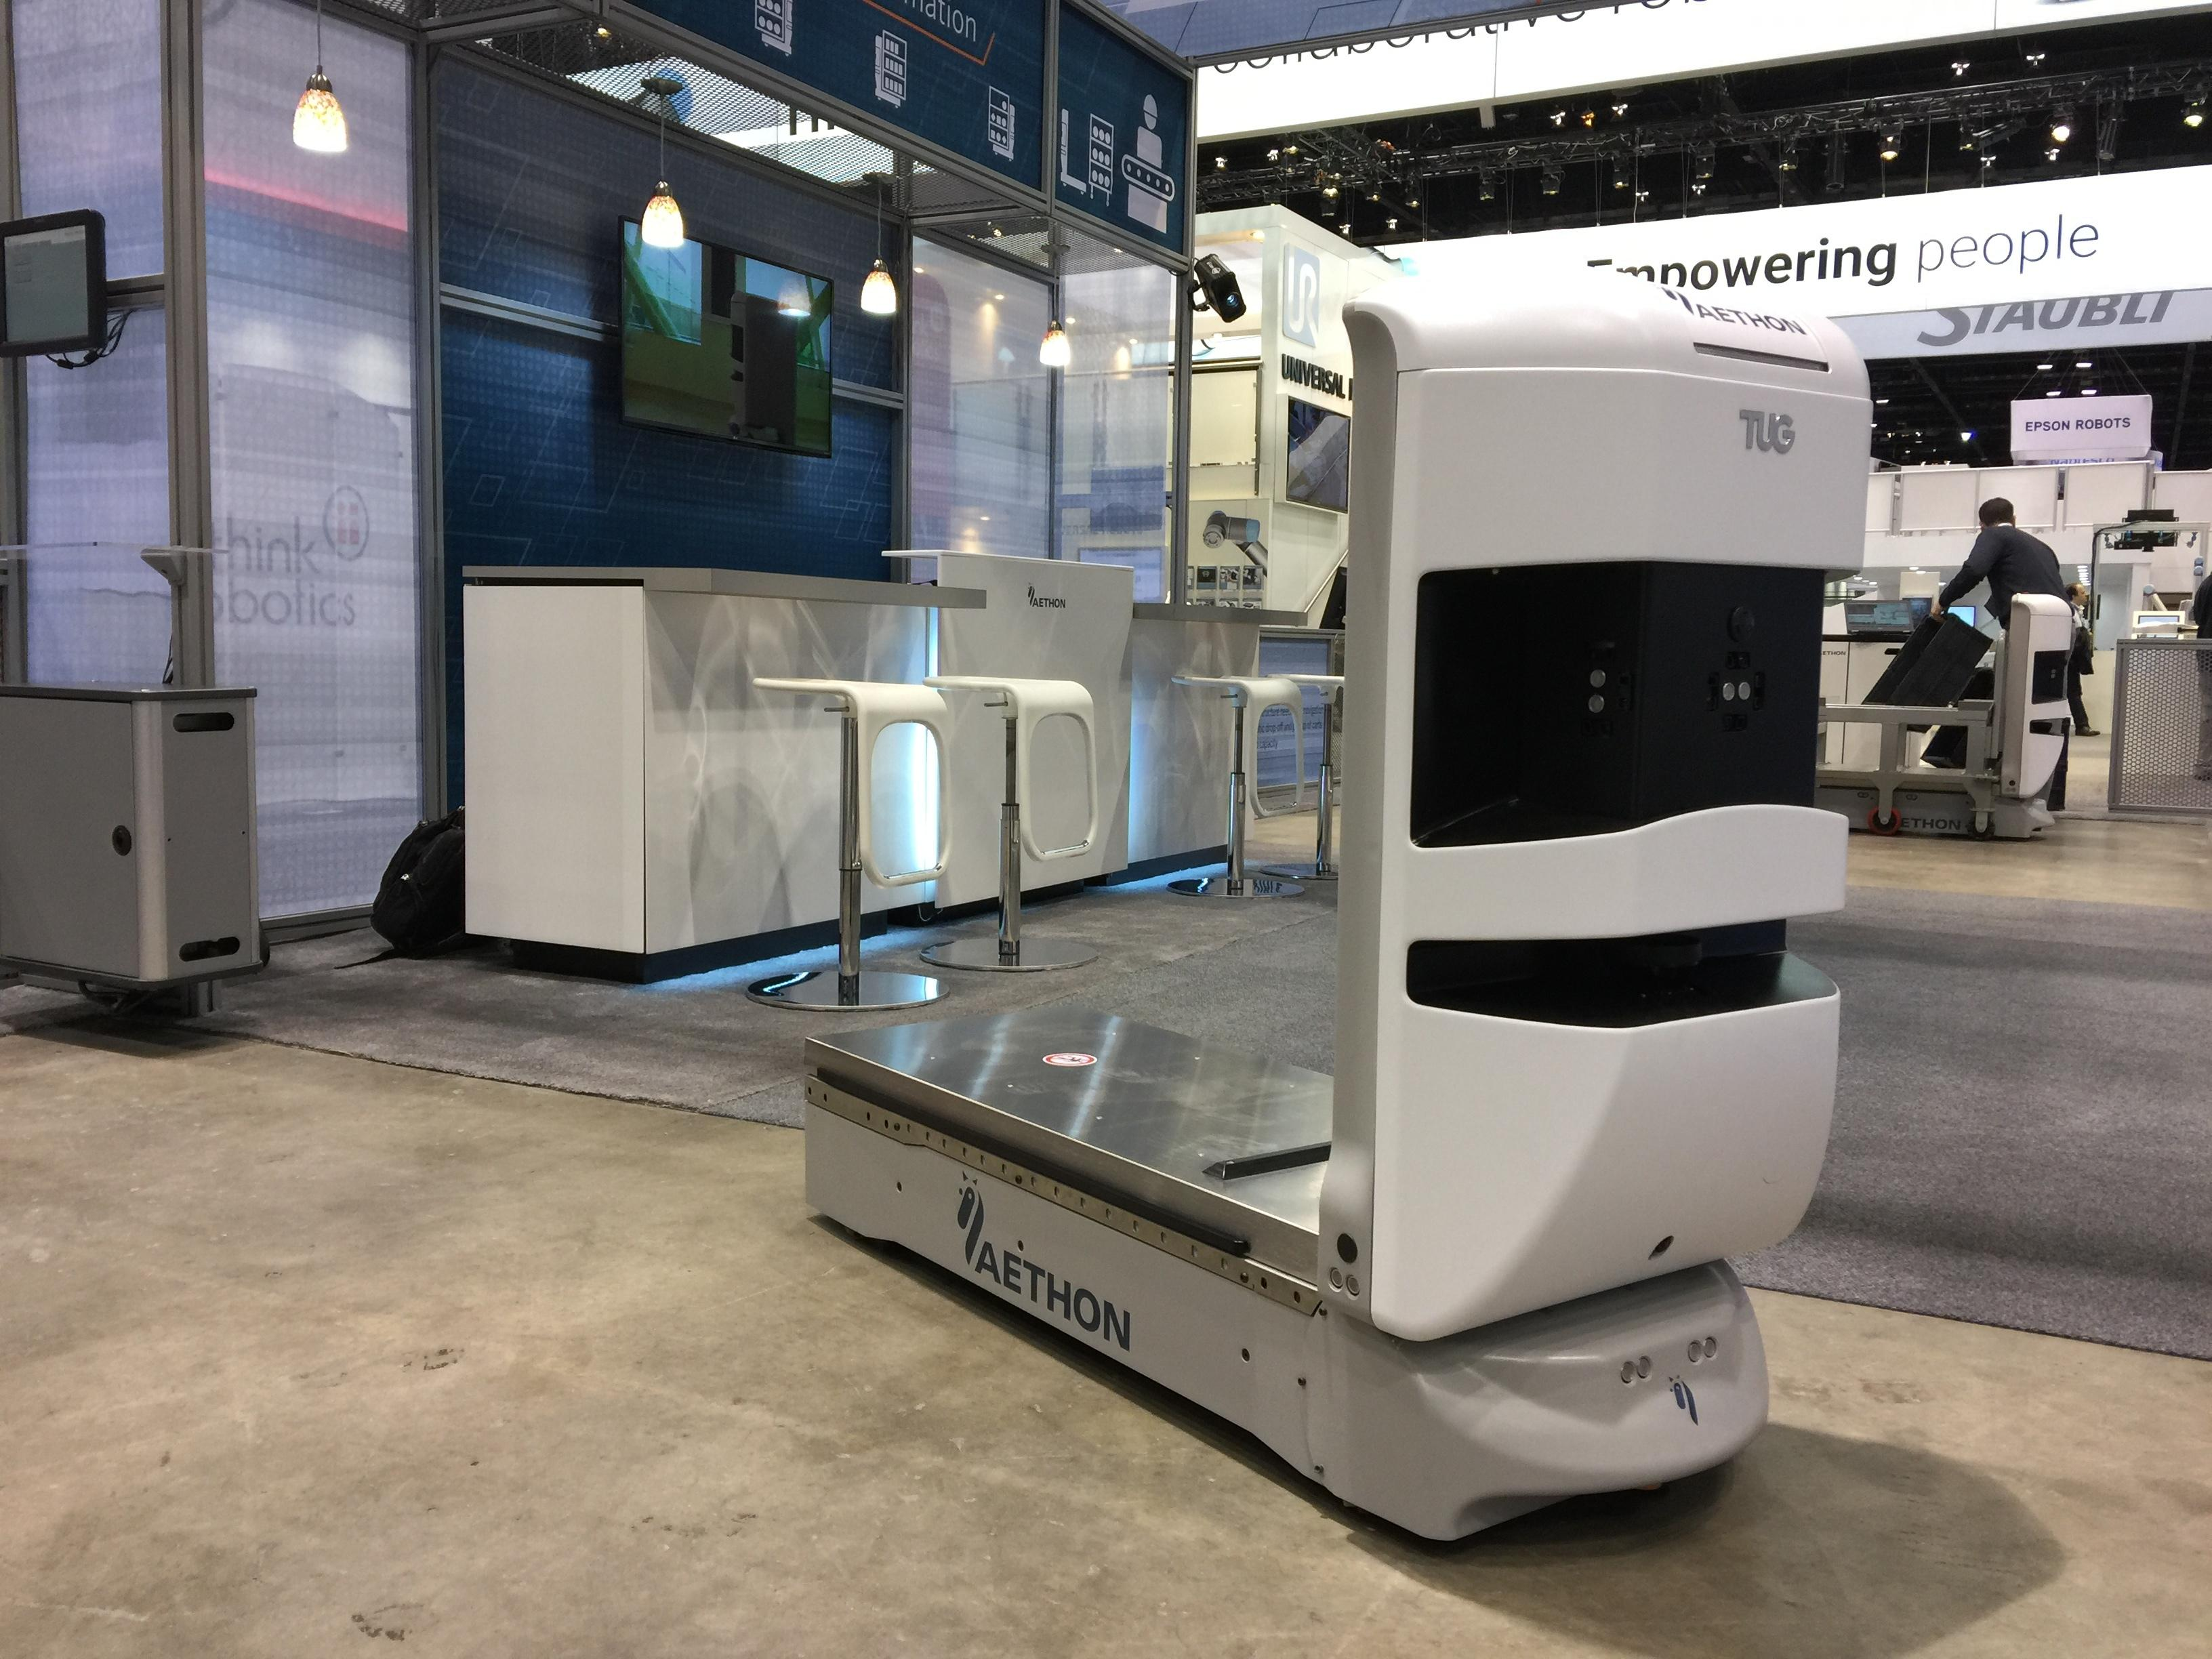 Aethon launches new autonomous mobile robots at Automate 2017